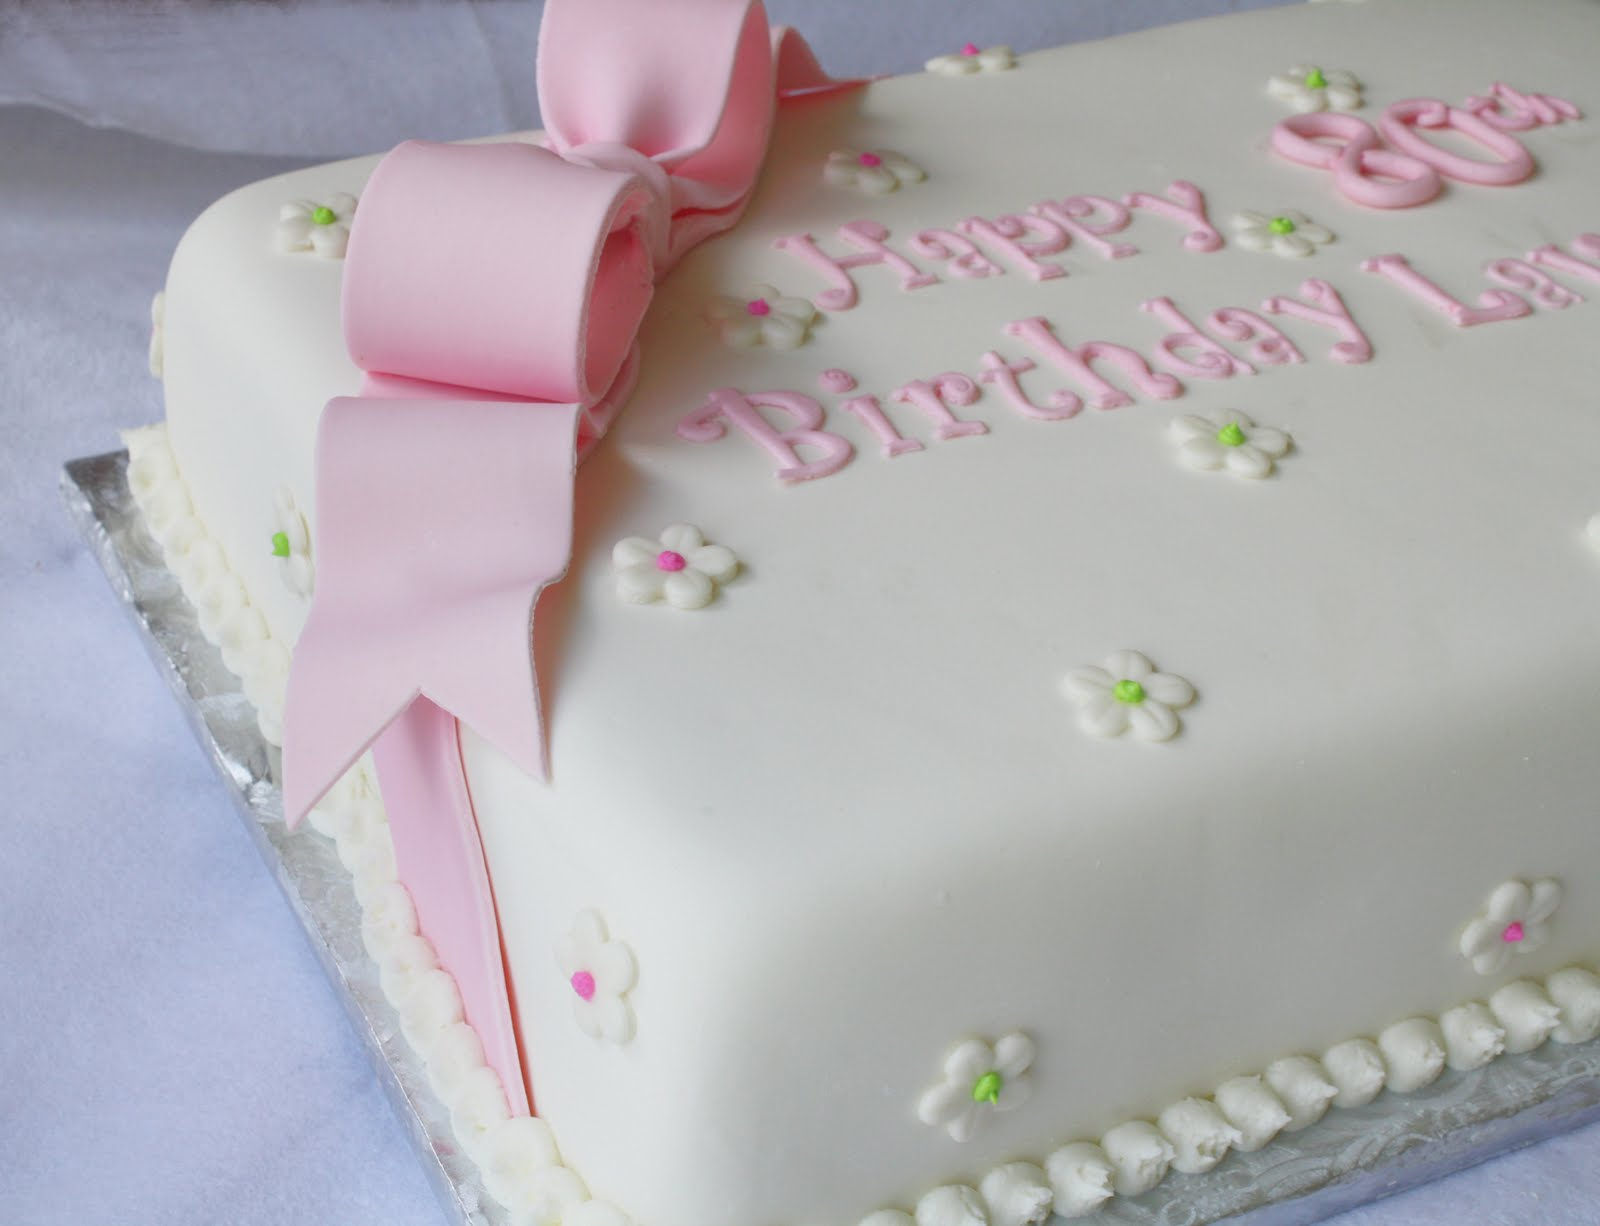 Pleasing Pink Green Sheet Cakes For 1St And 80Th Birthdays Funny Birthday Cards Online Hendilapandamsfinfo